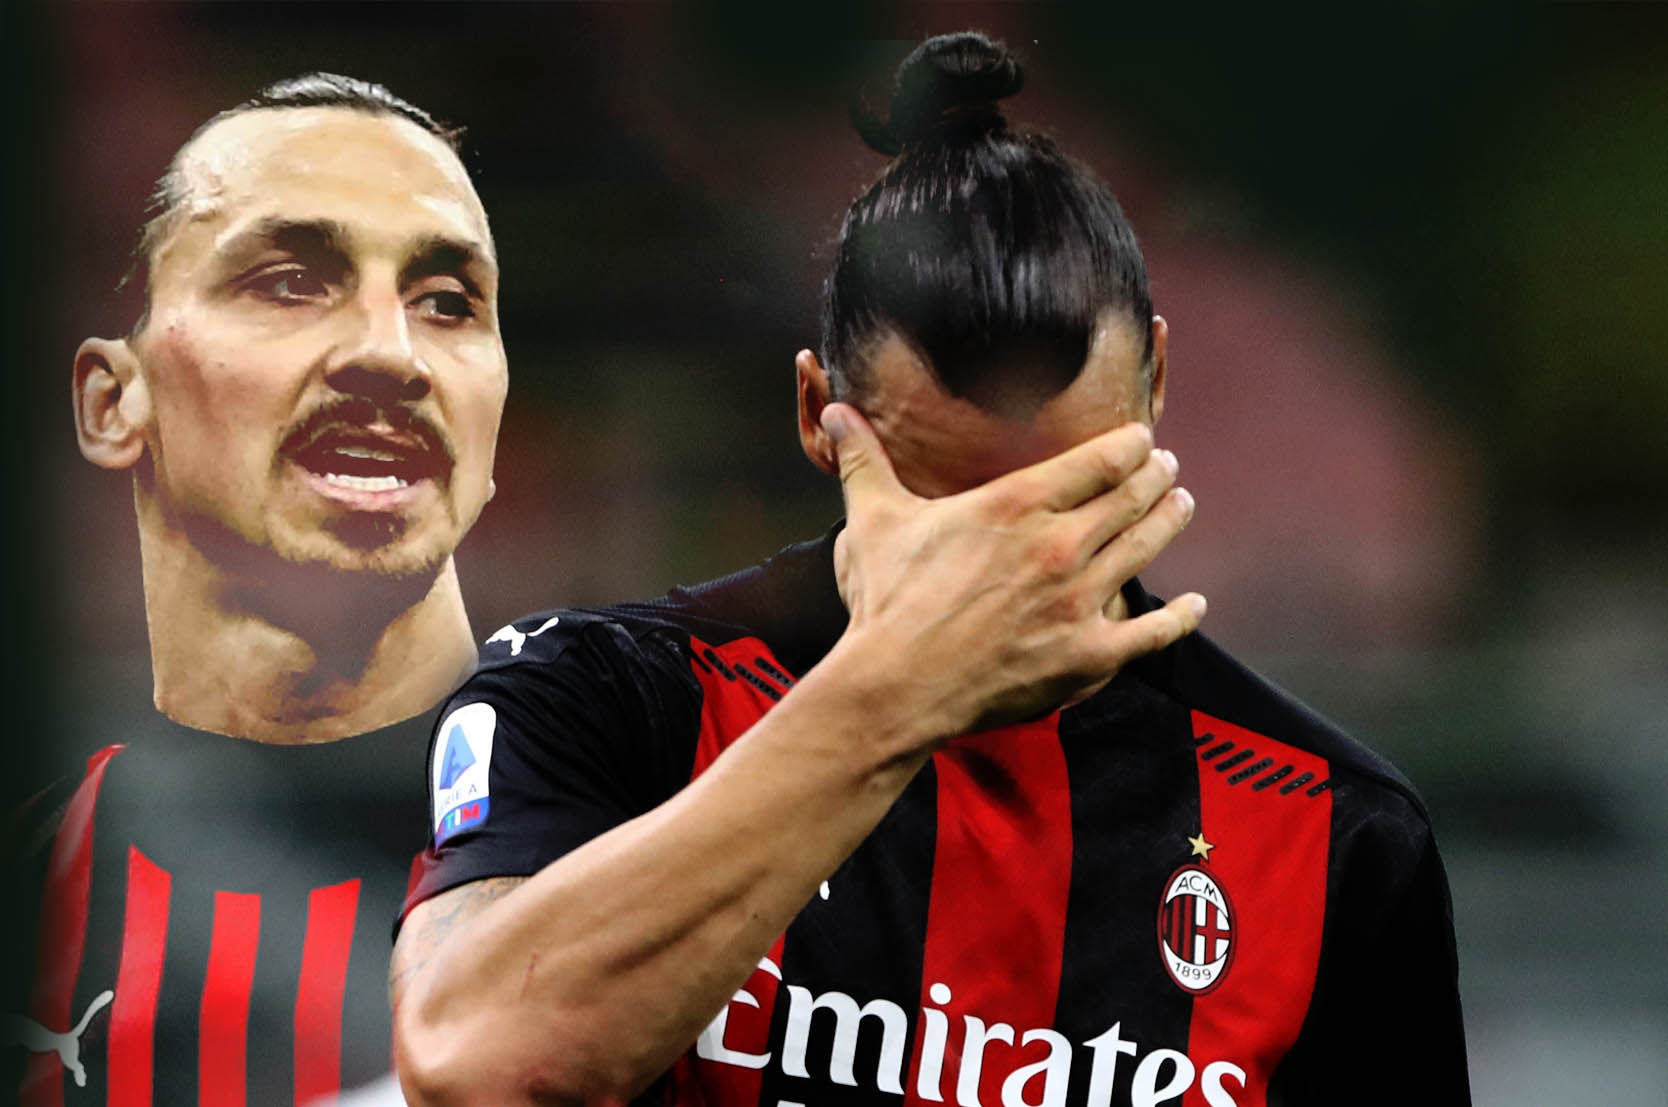 Come sta Ibrahimovic?